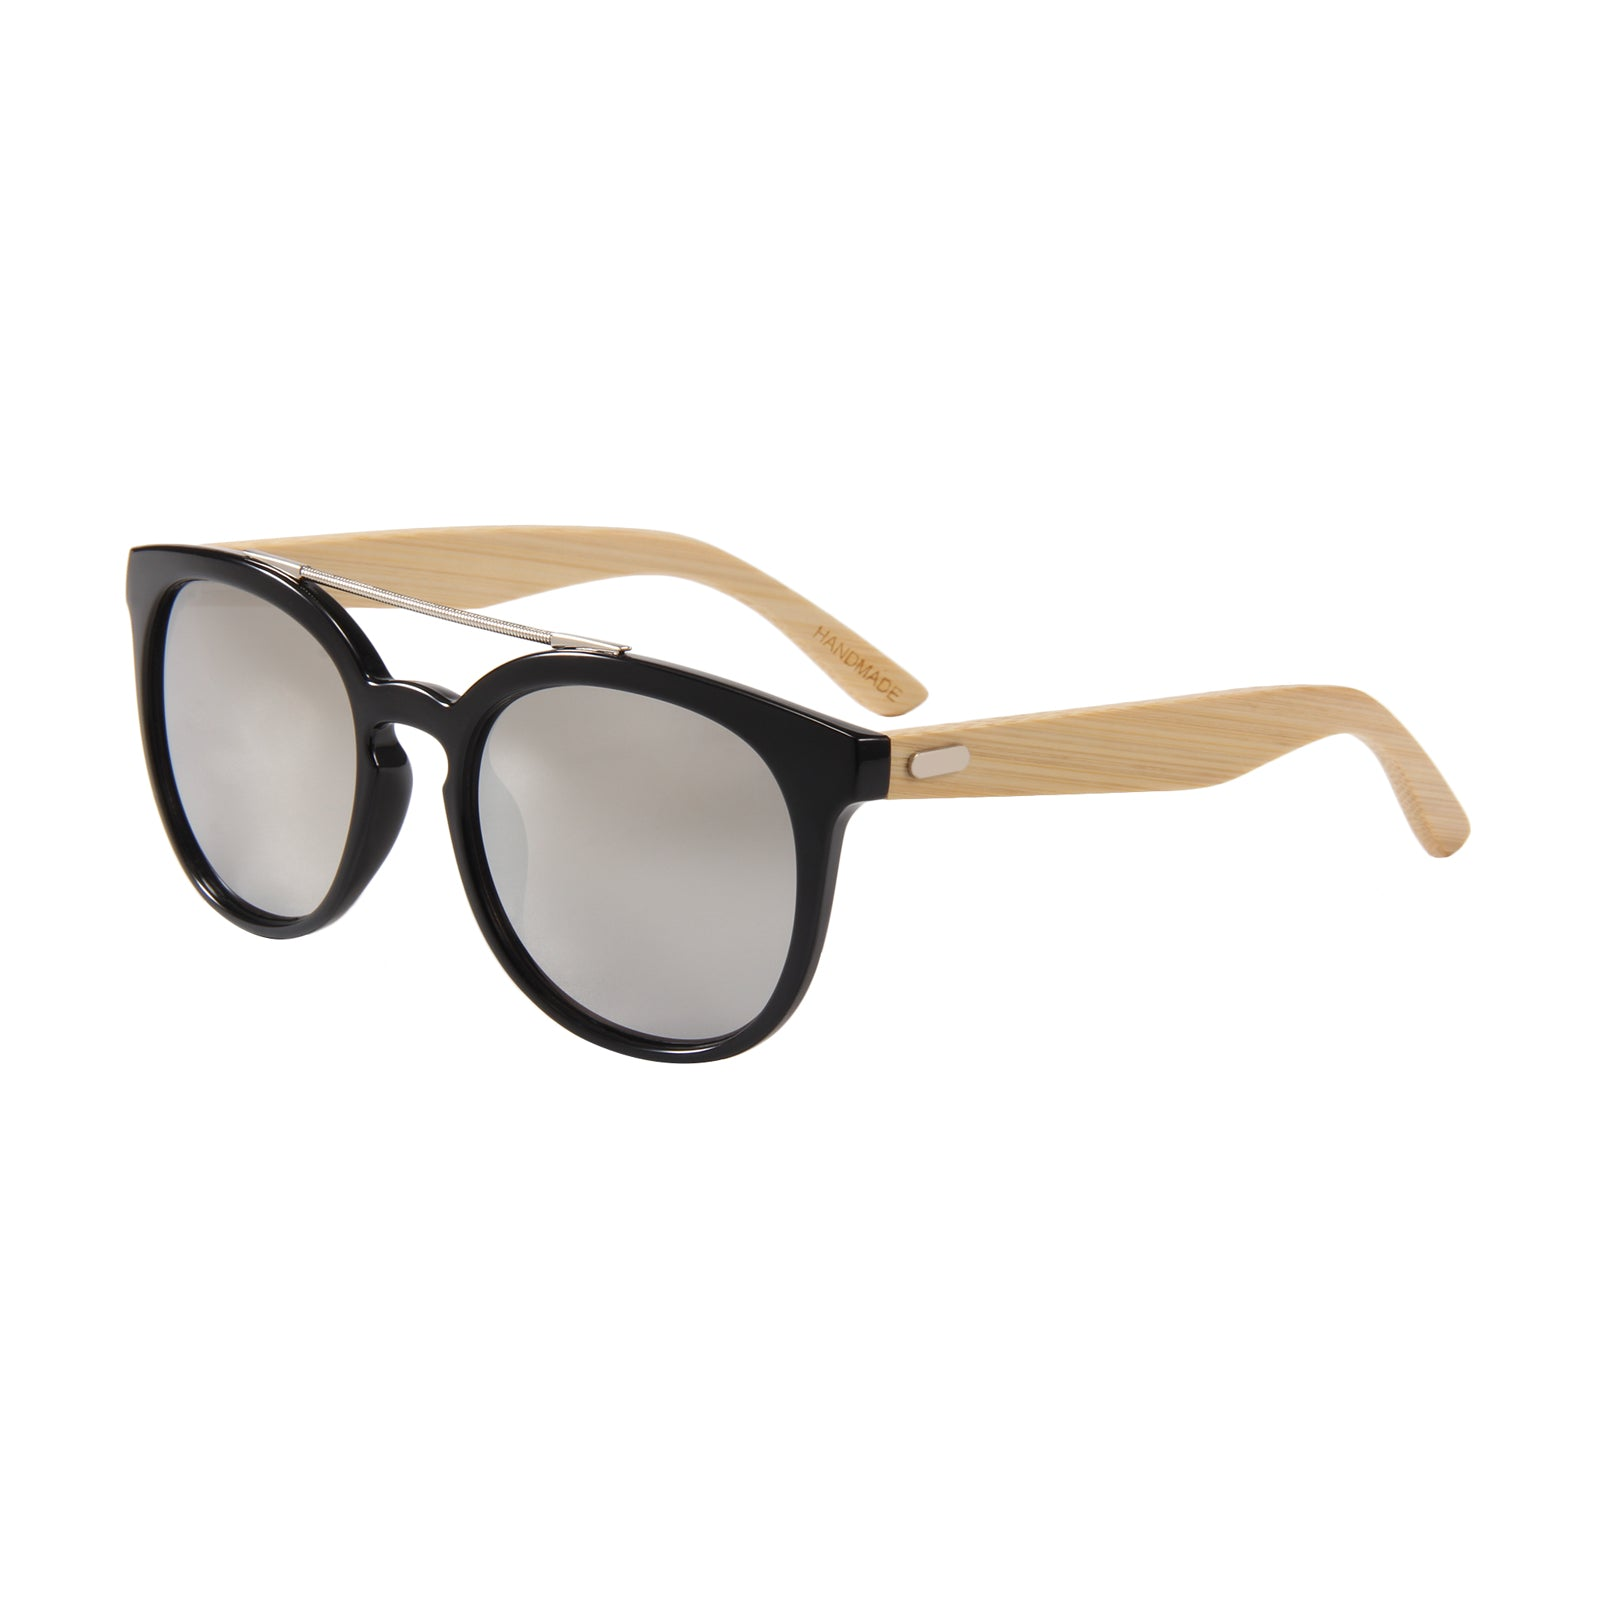 Bronte Sunglasses (Black)